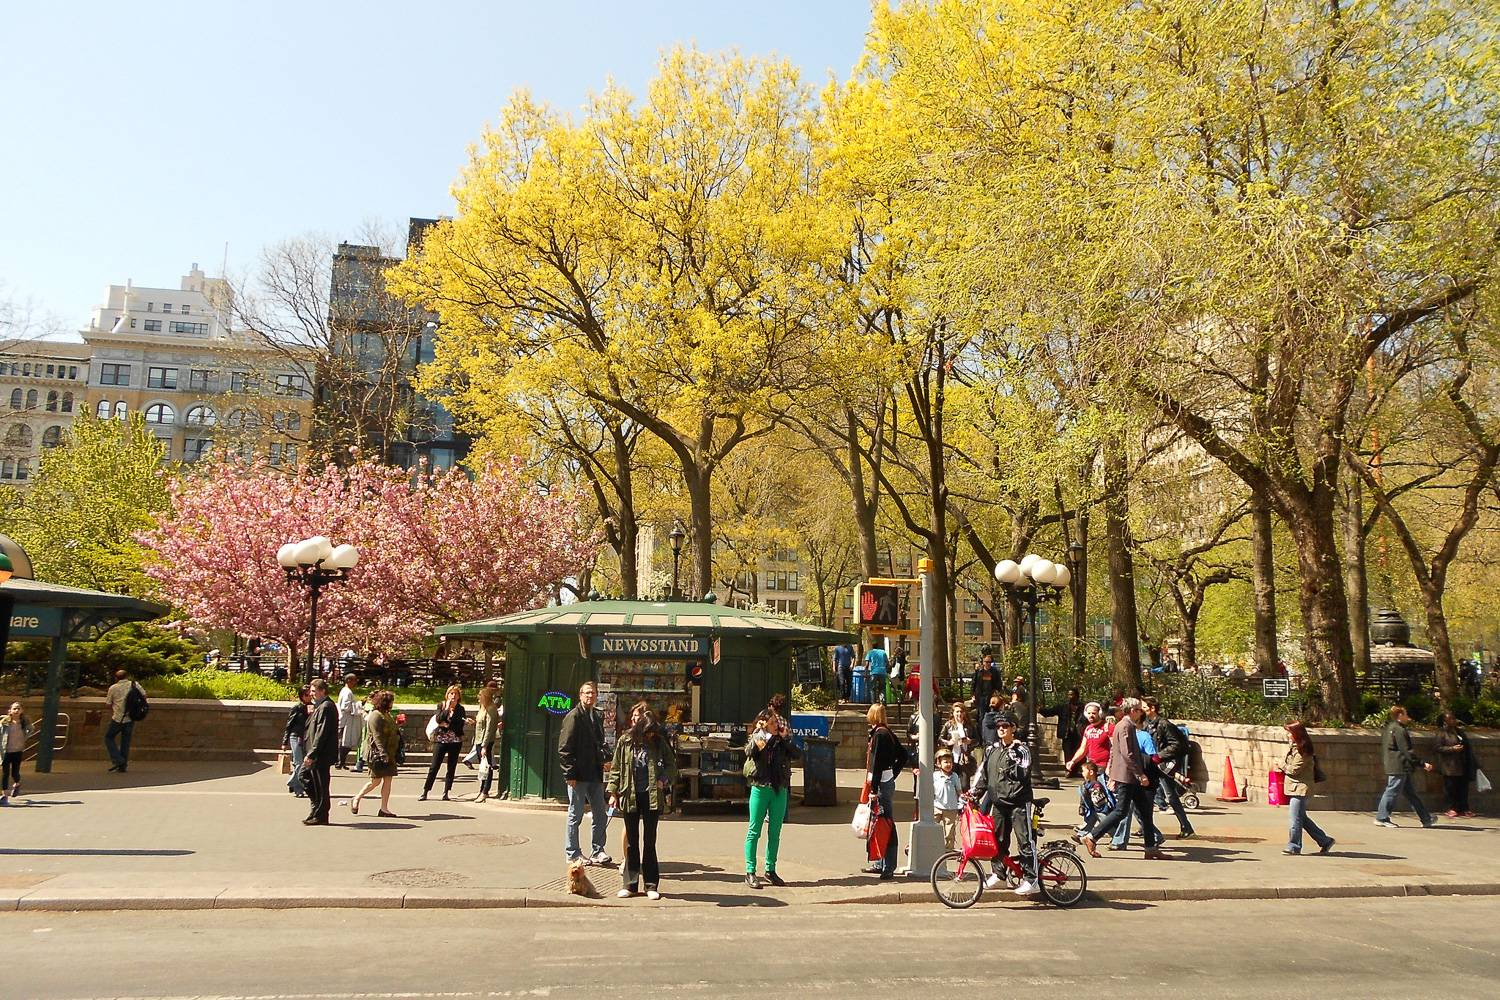 Immagine di una street view di Union Square park in primavera.